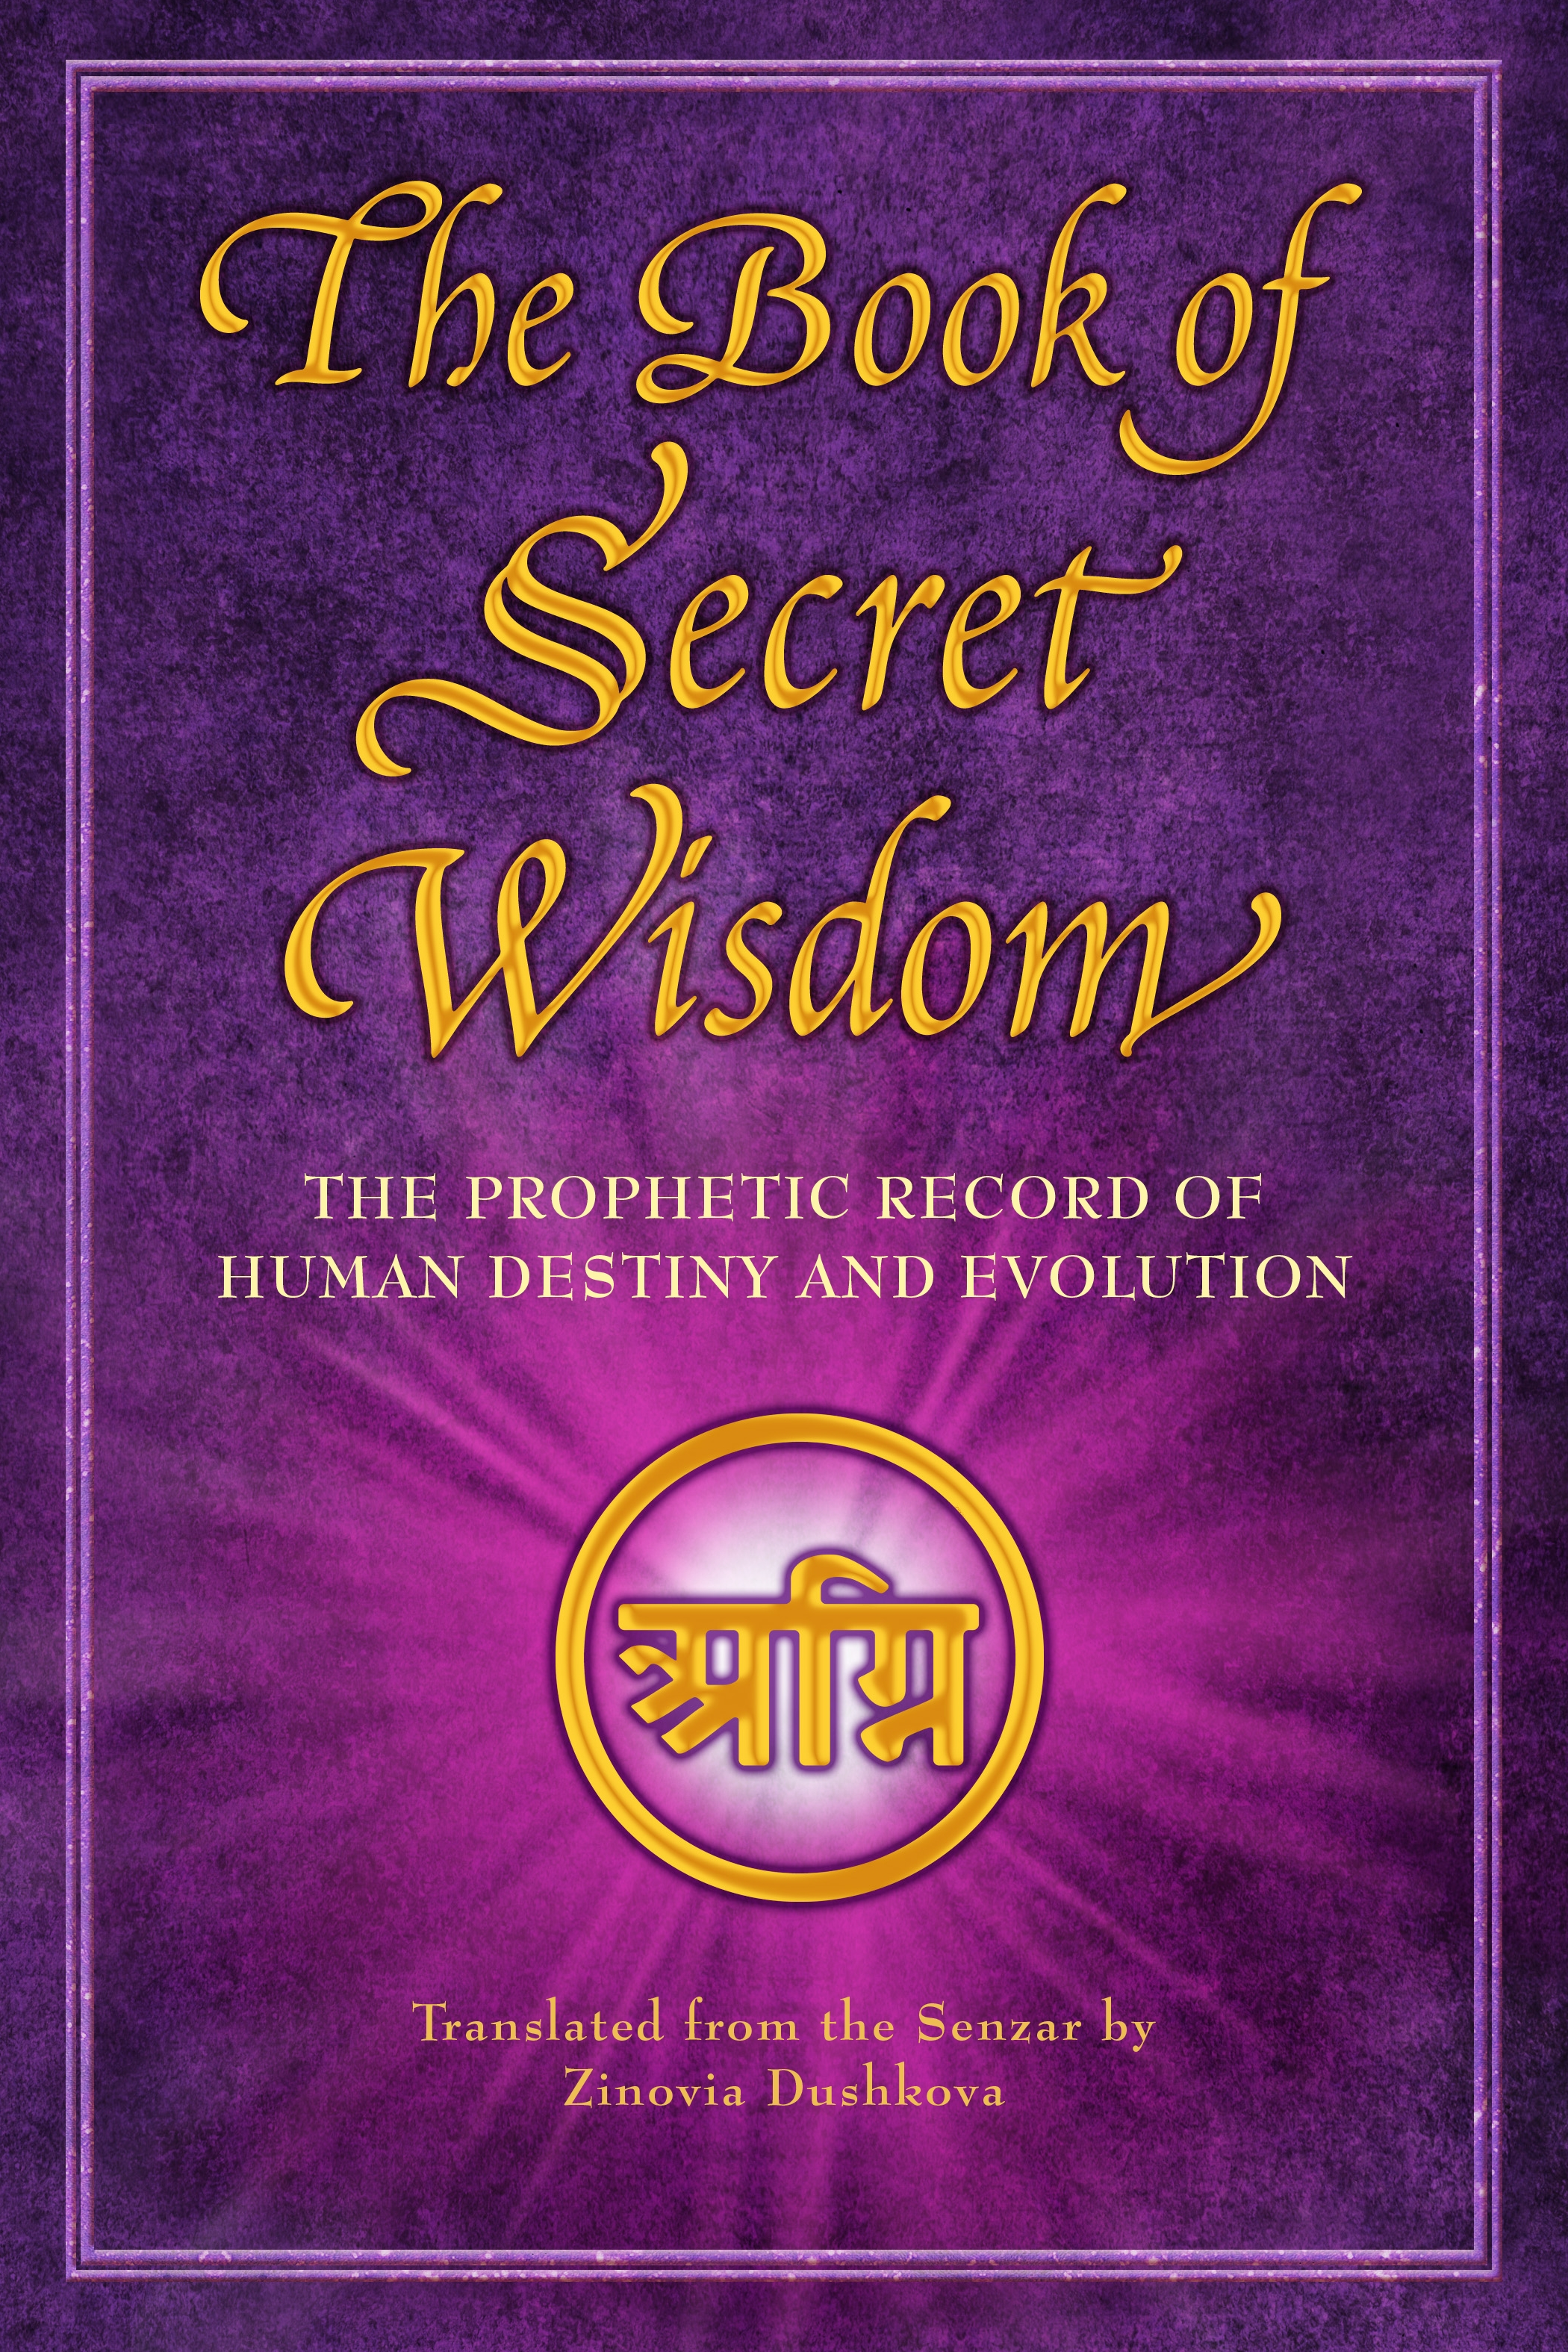 Download: Book Of Secret Wisdom Pdf.pdf